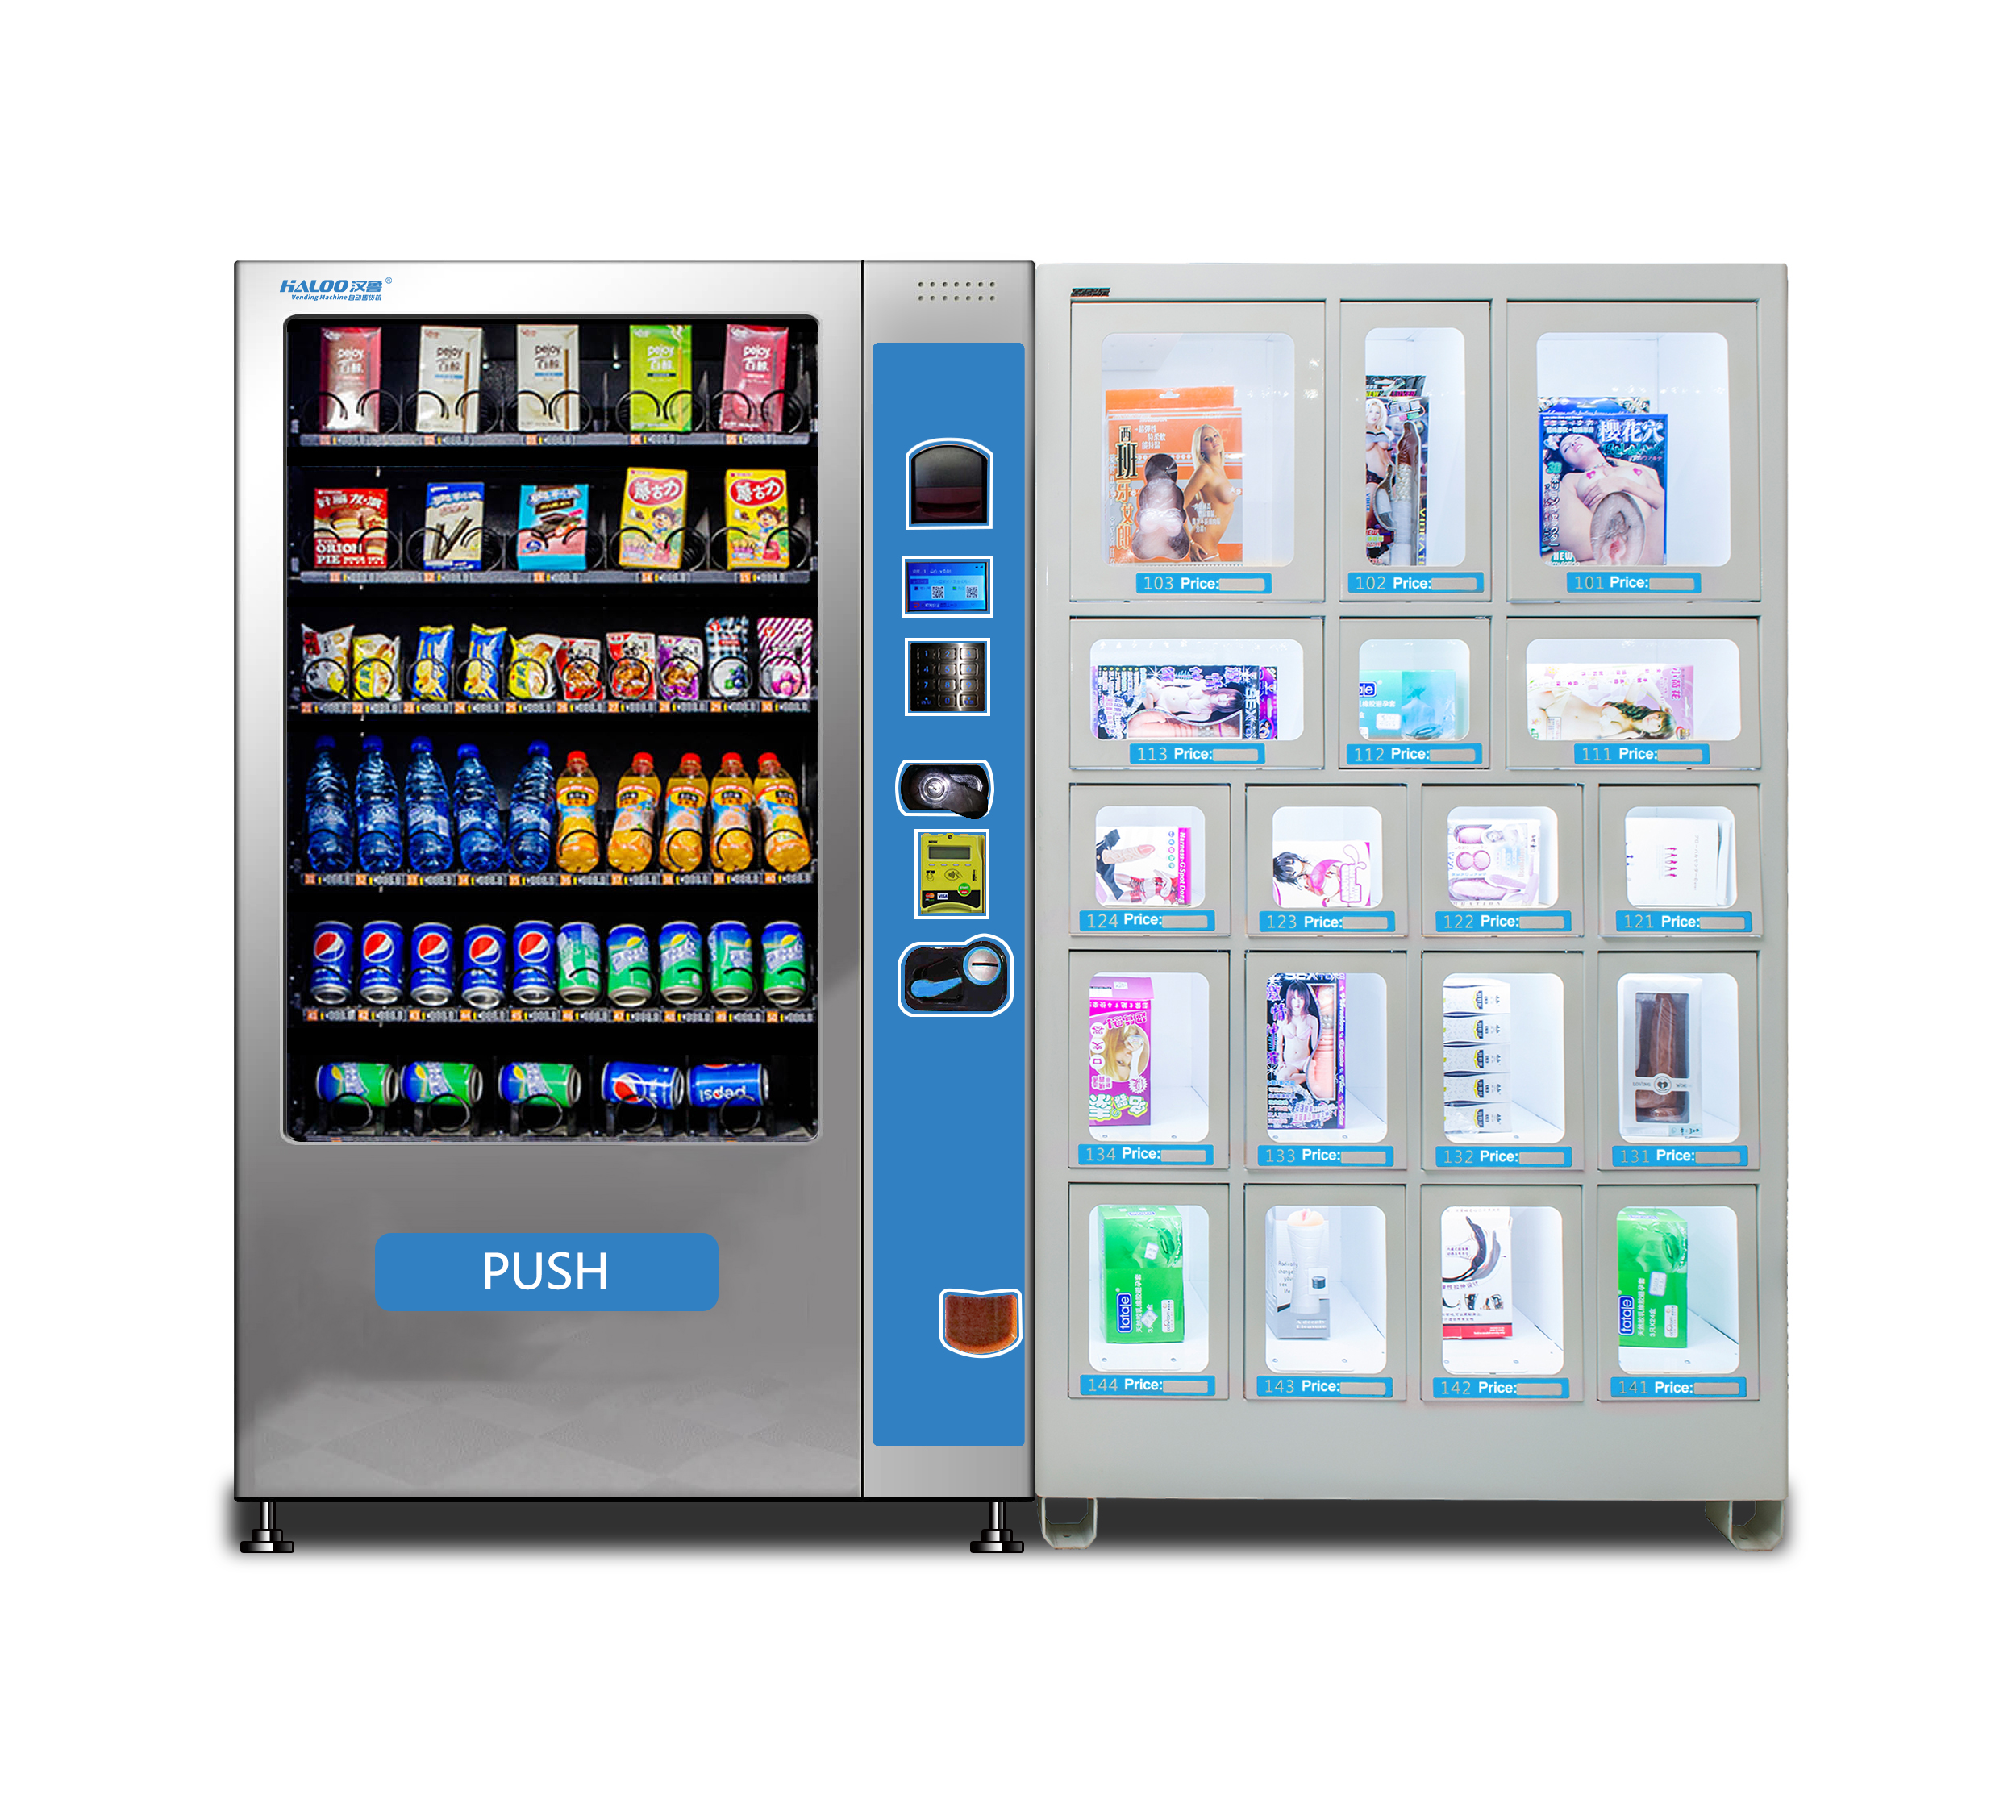 24 hour fresh fruit salad sushi meat flower vegetable egg locker vending machine